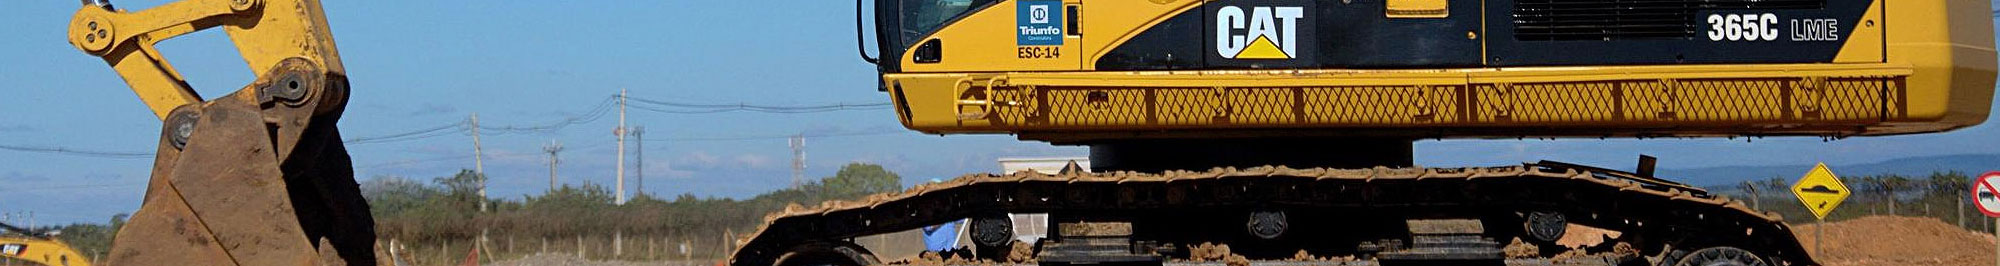 Caterpillar Excavator Undercarriages